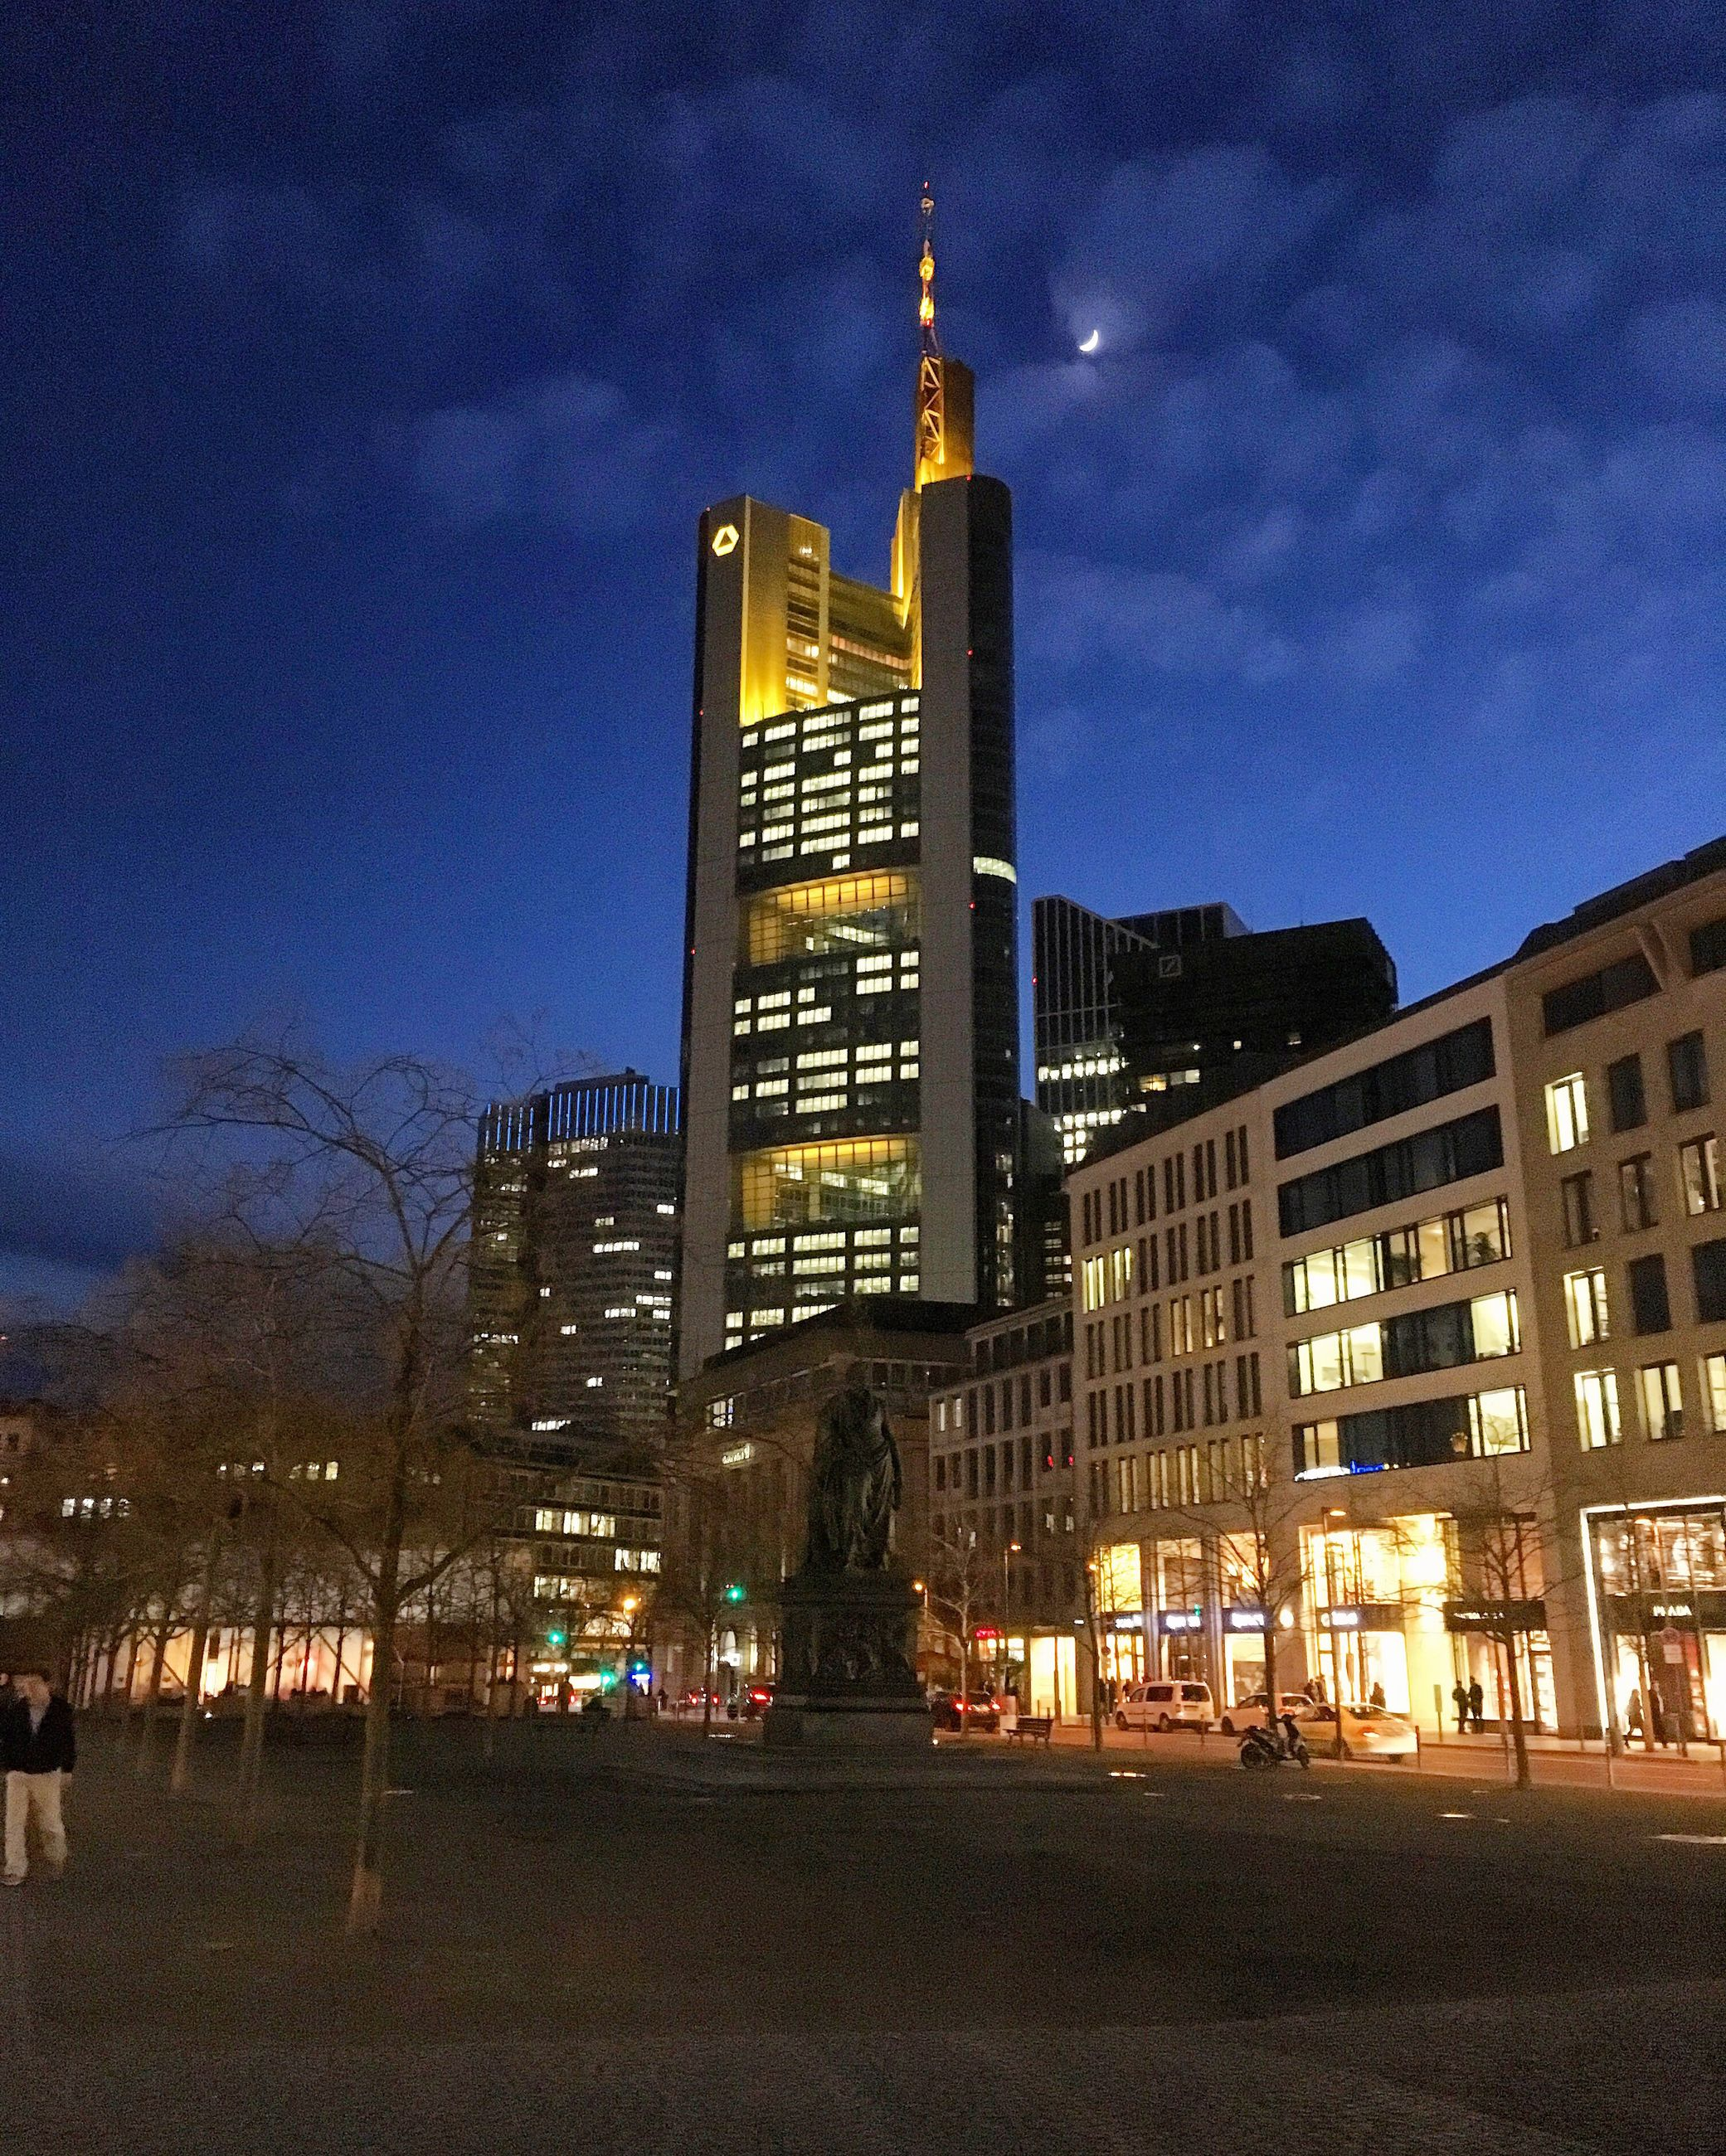 architecture, building exterior, built structure, illuminated, city, sky, tower, night, tall - high, skyscraper, dusk, building, modern, travel destinations, sunset, street, capital cities, city life, low angle view, office building